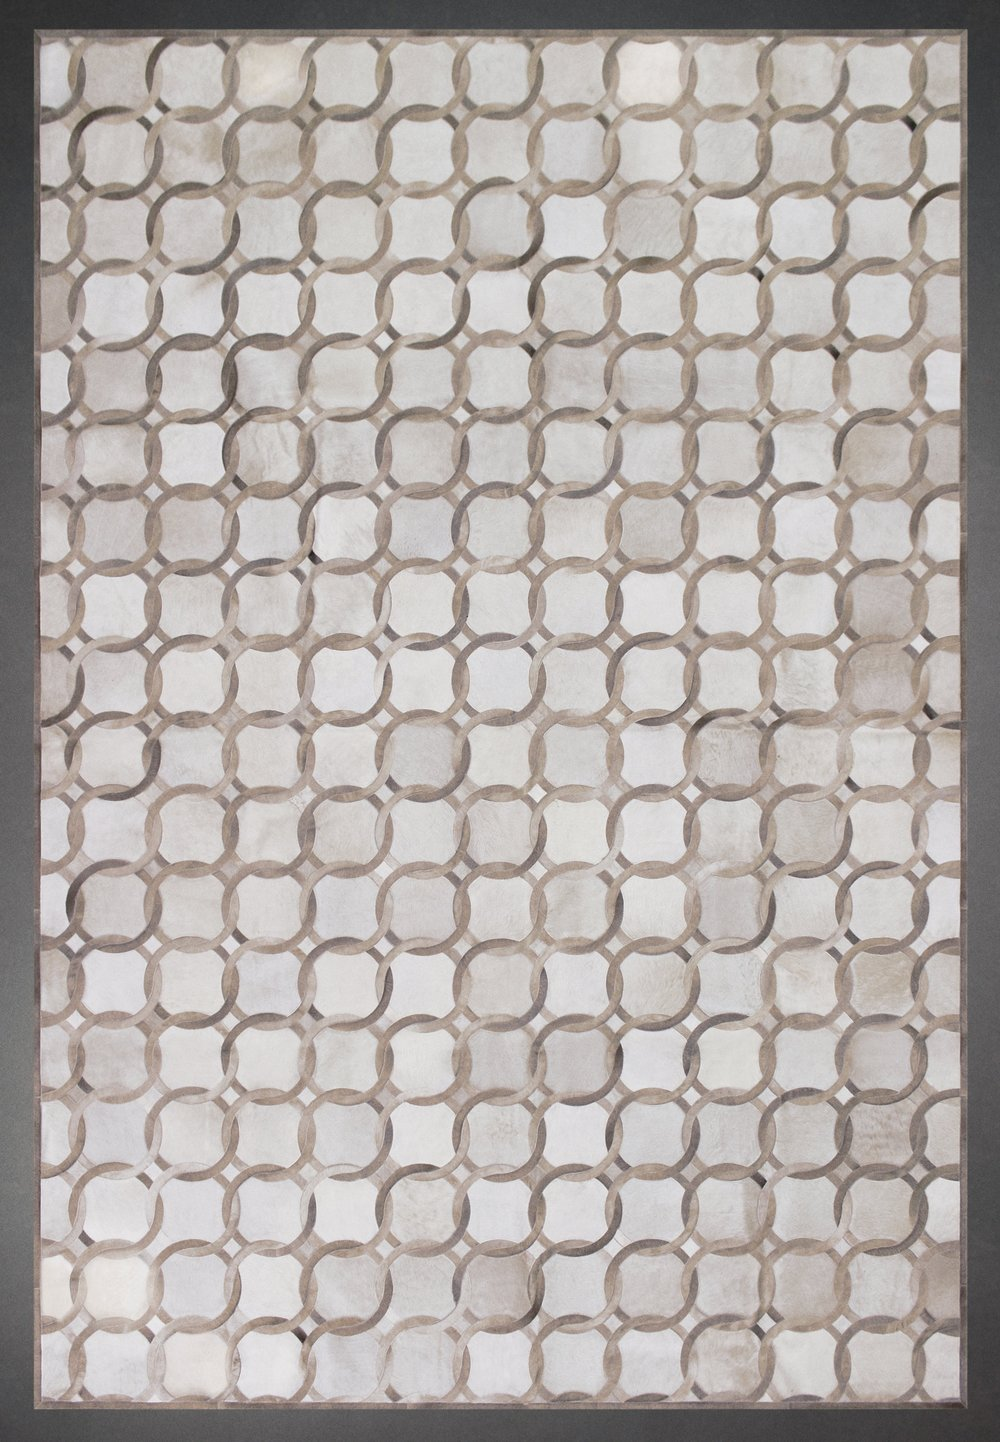 Contemporary designed fur rug in a square and circle pattern in grays and browns.